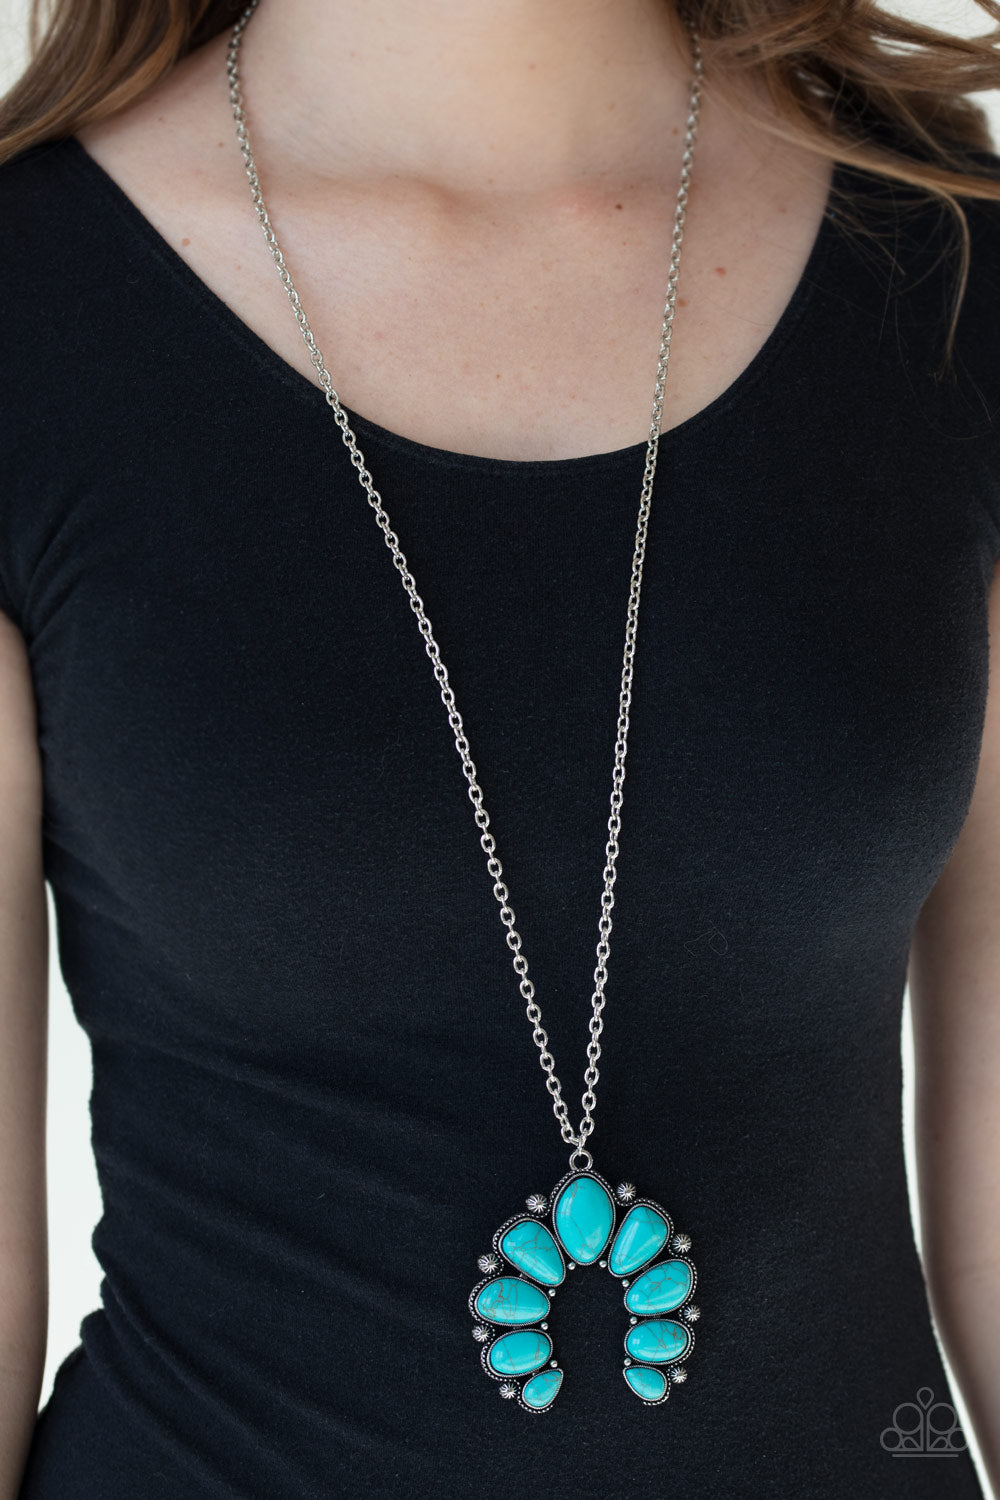 Paparazzi Jewelry & Accessories - Stone Monument - Blue Necklace. Bling By Titia Boutique